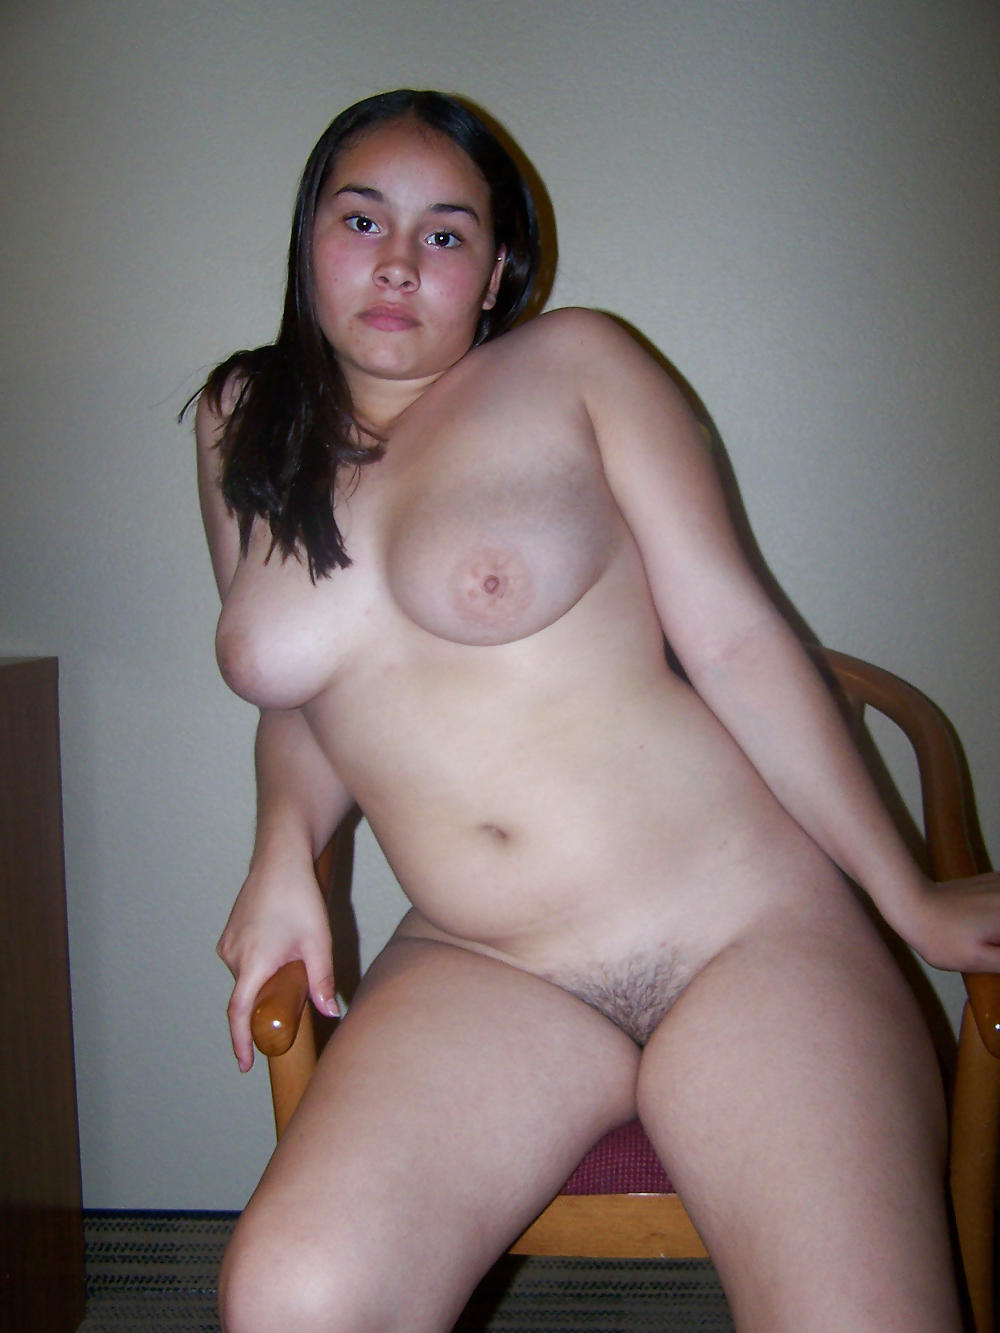 Chubby amateur naked girl